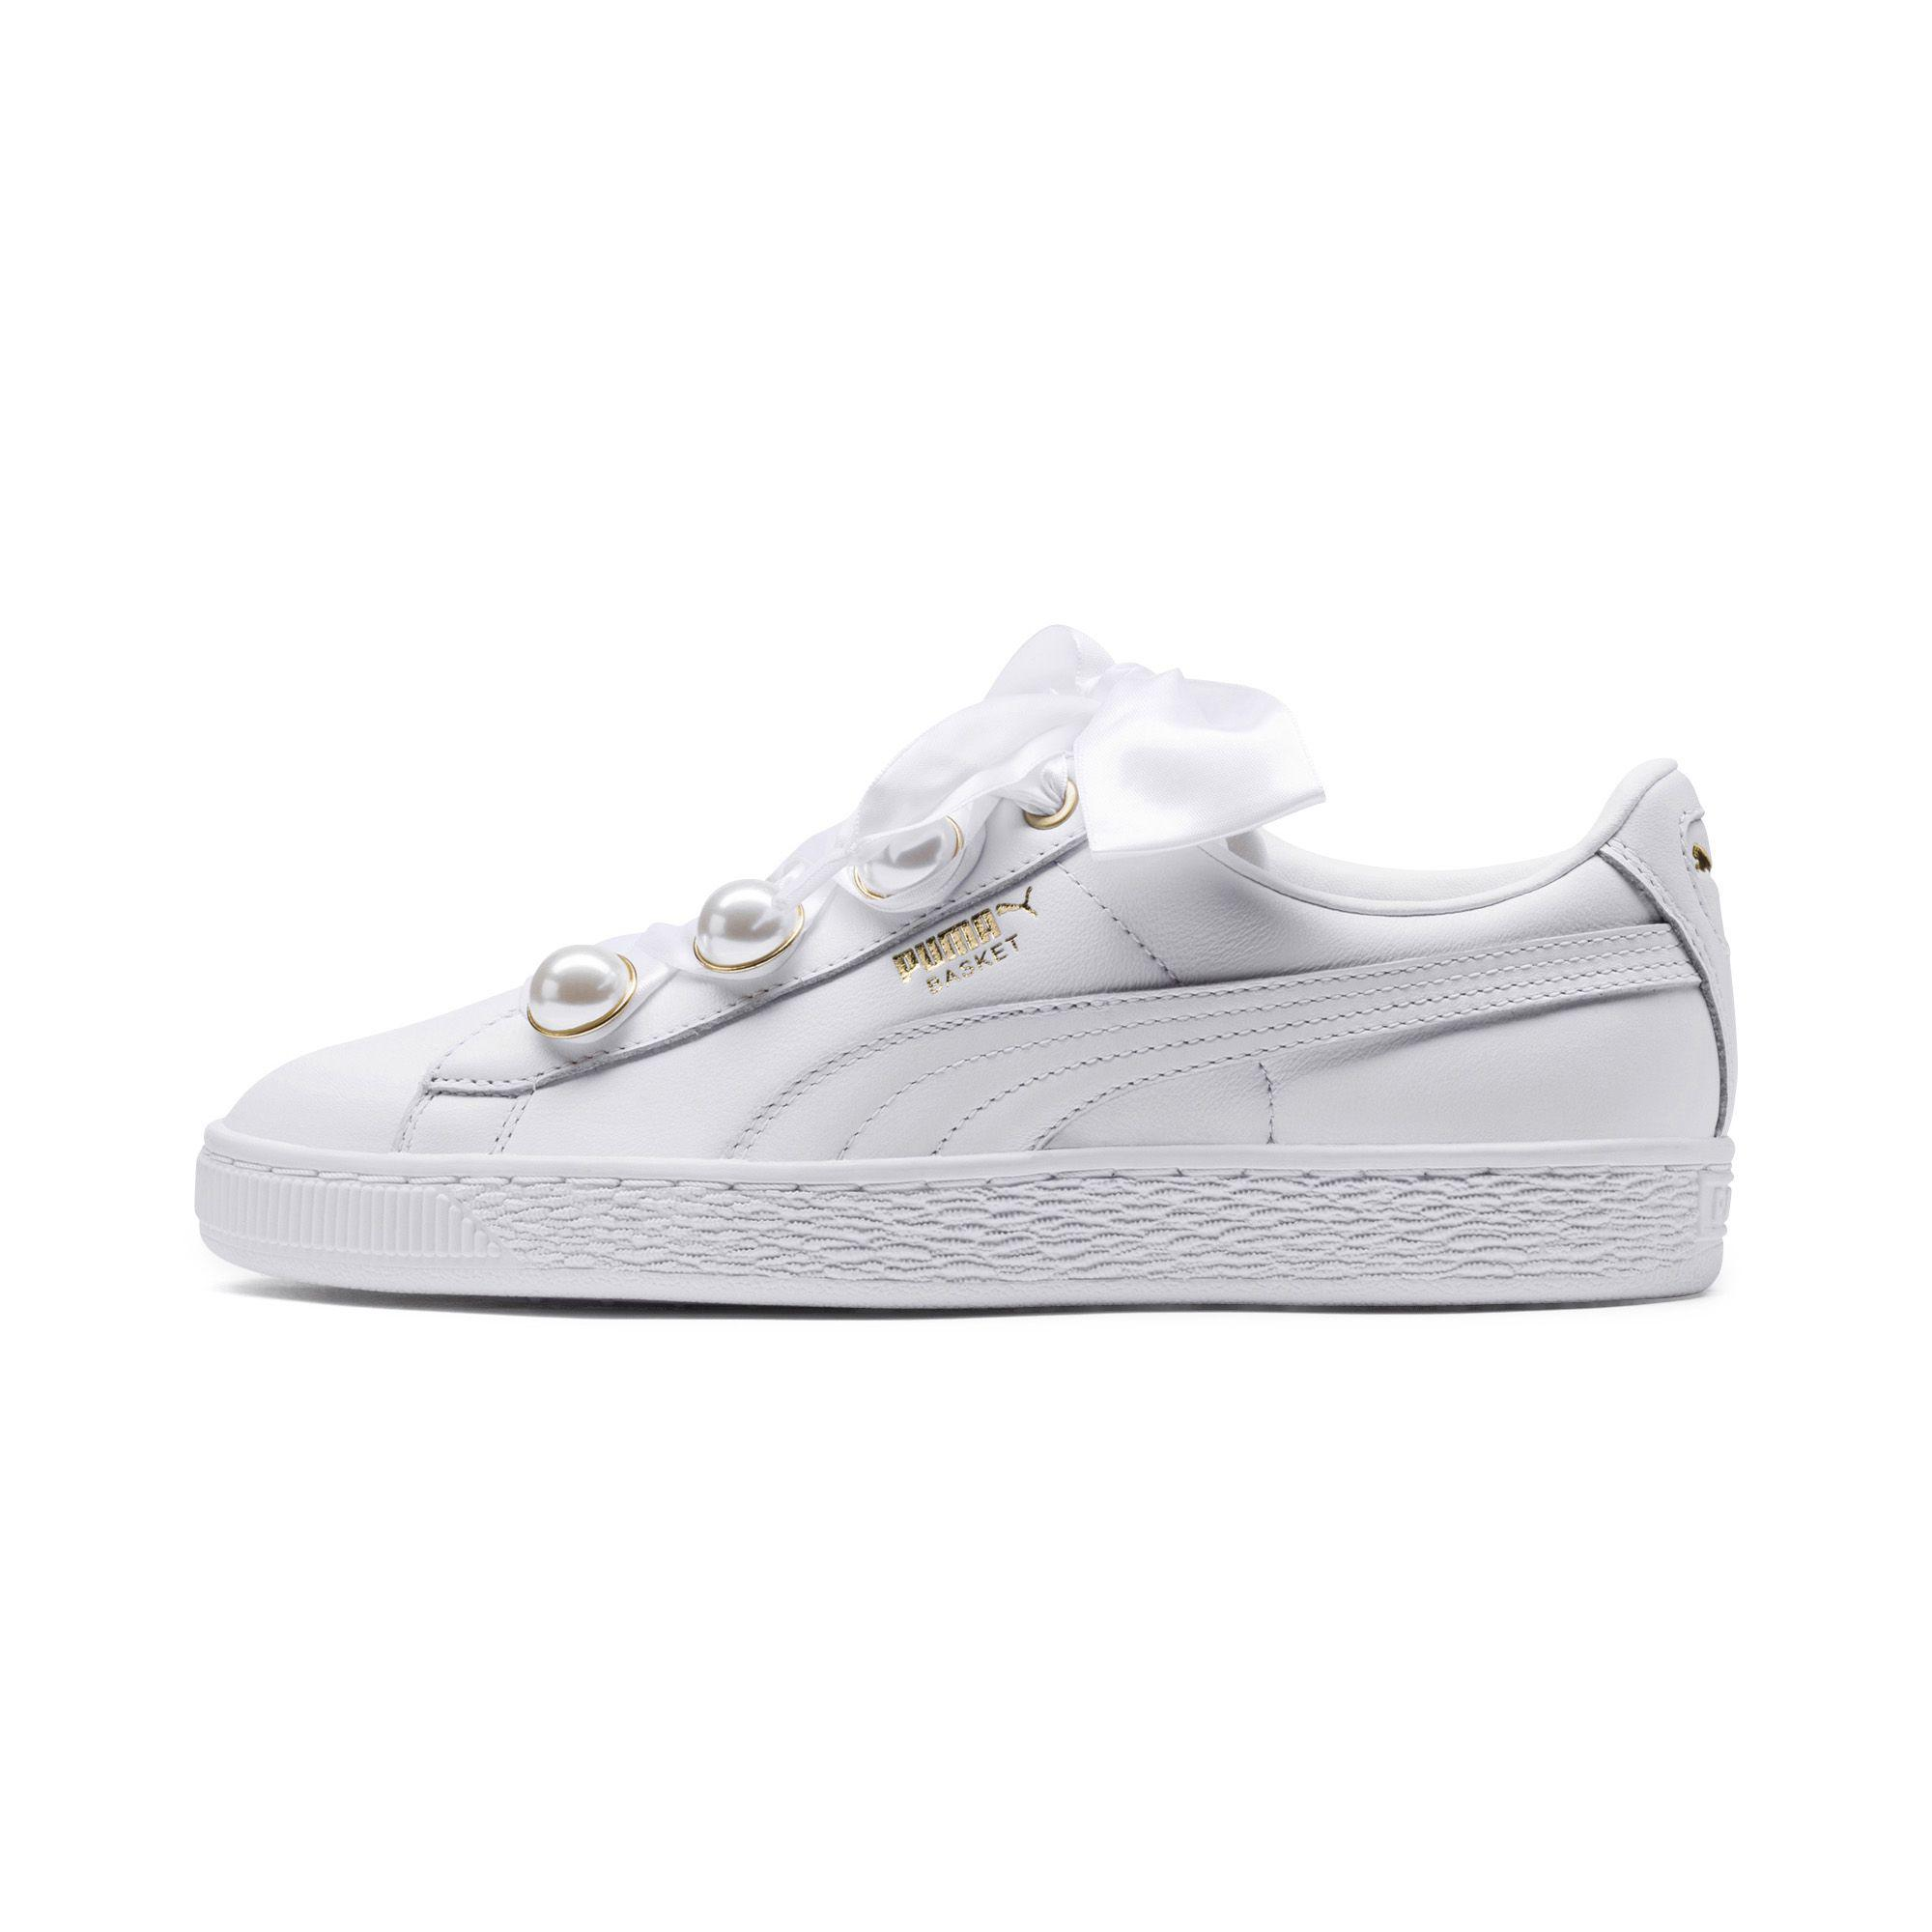 PUMA Leather Basket Bling 's Sneakers